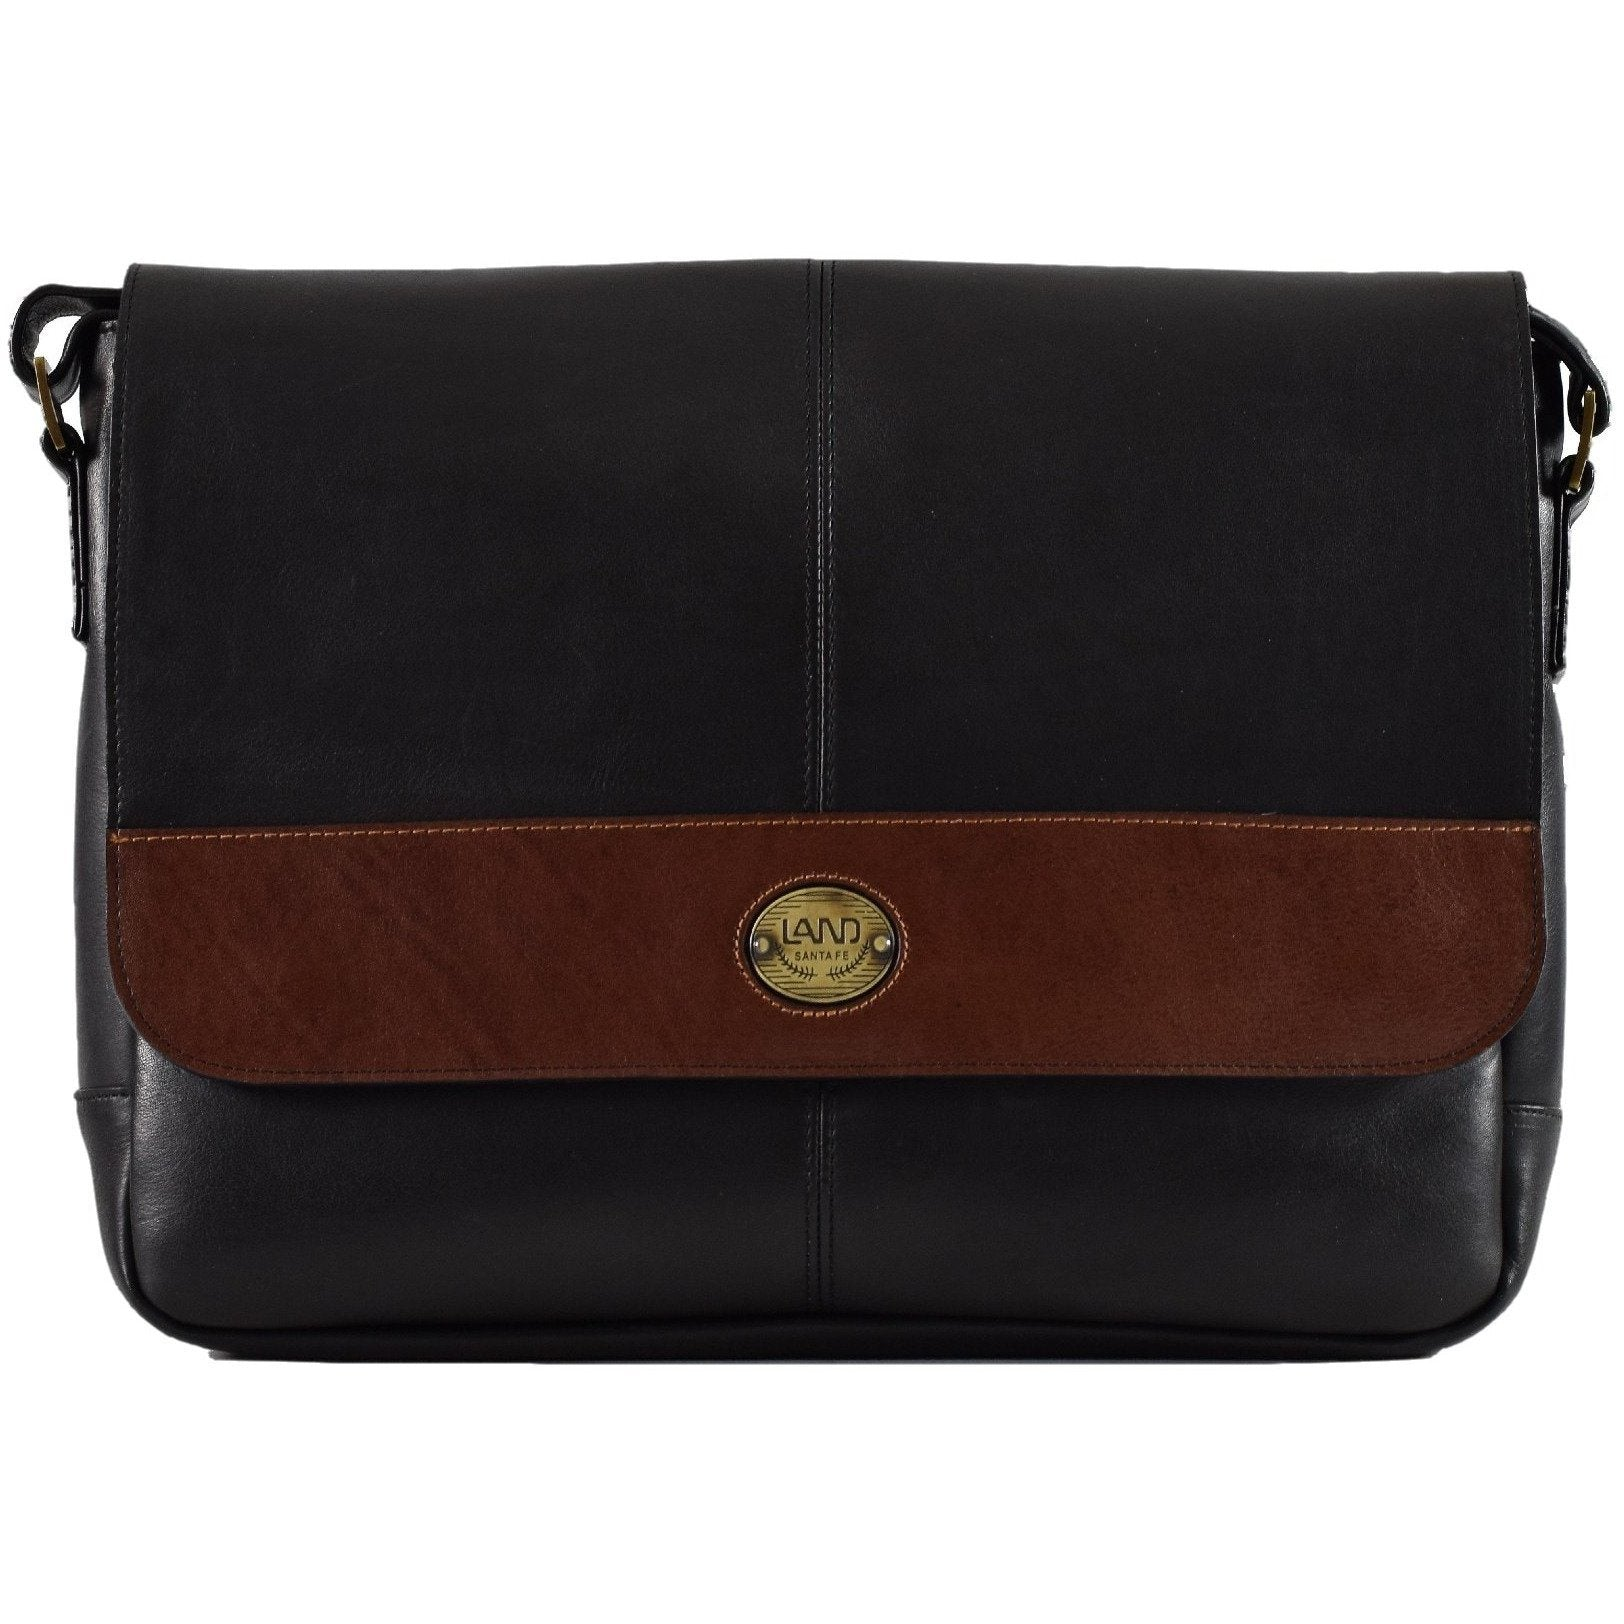 Santa Fe Unisex Messenger, Messenger Bag | LAND Leather